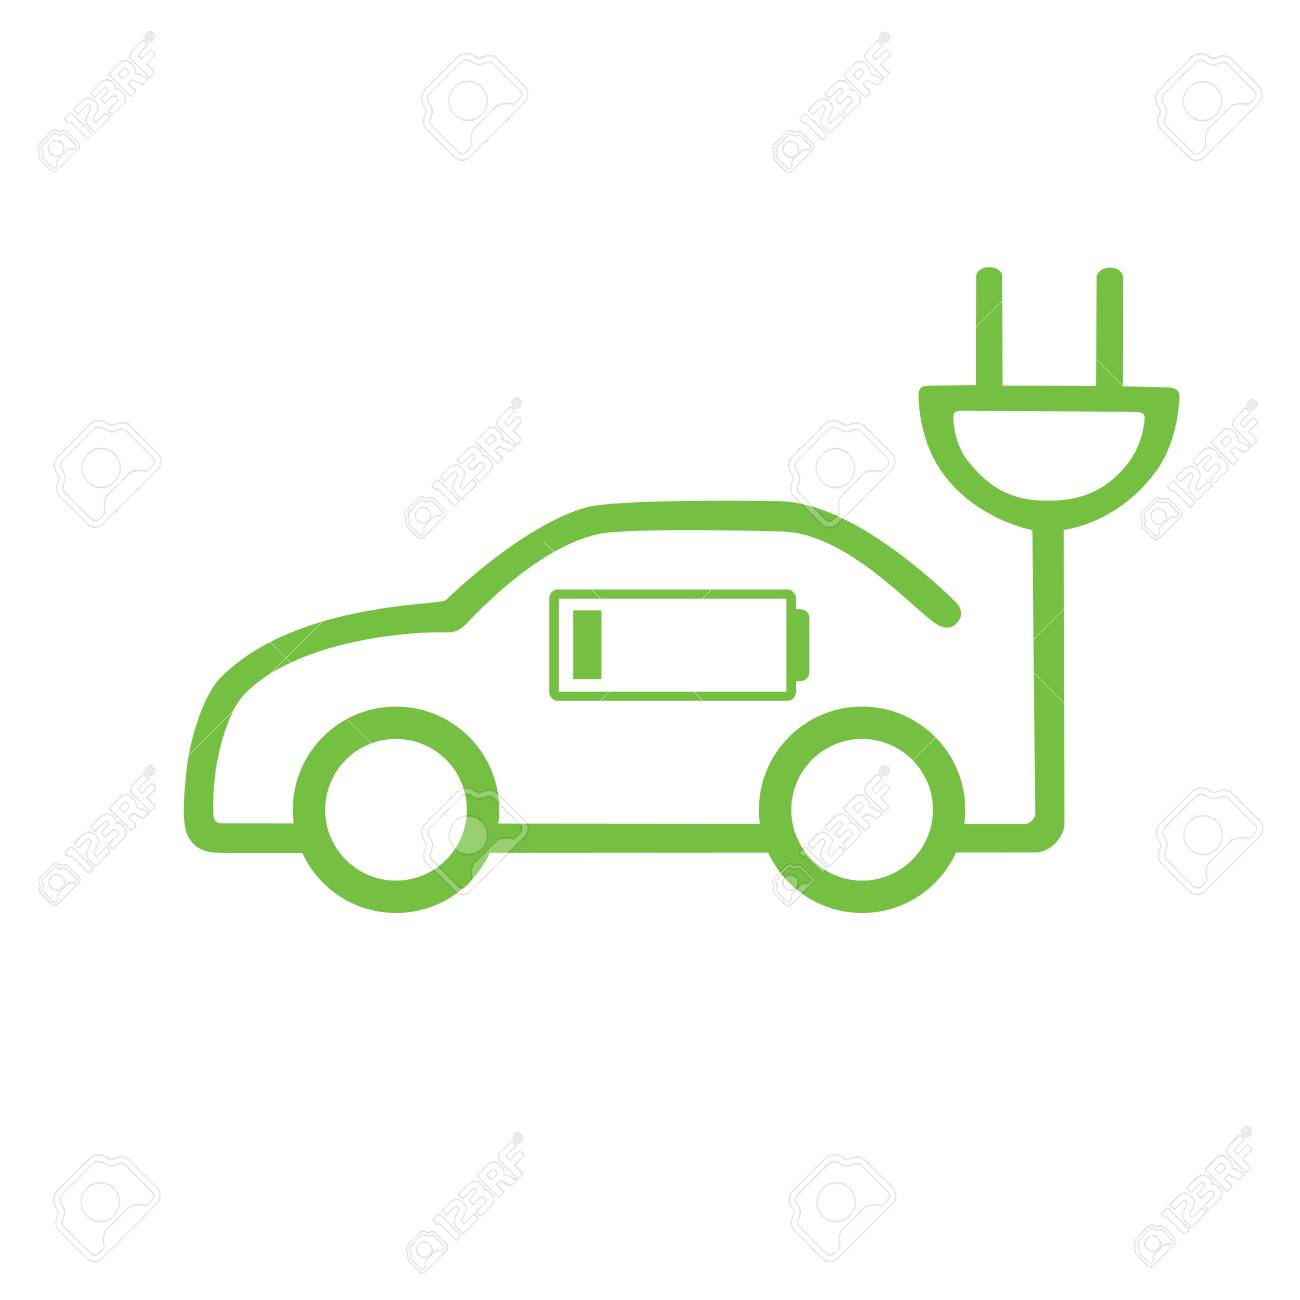 Car vector icon in thin line style, hybrid vehicles icon. Eco friendly auto or electric vehicle concept on white background. - 94780450